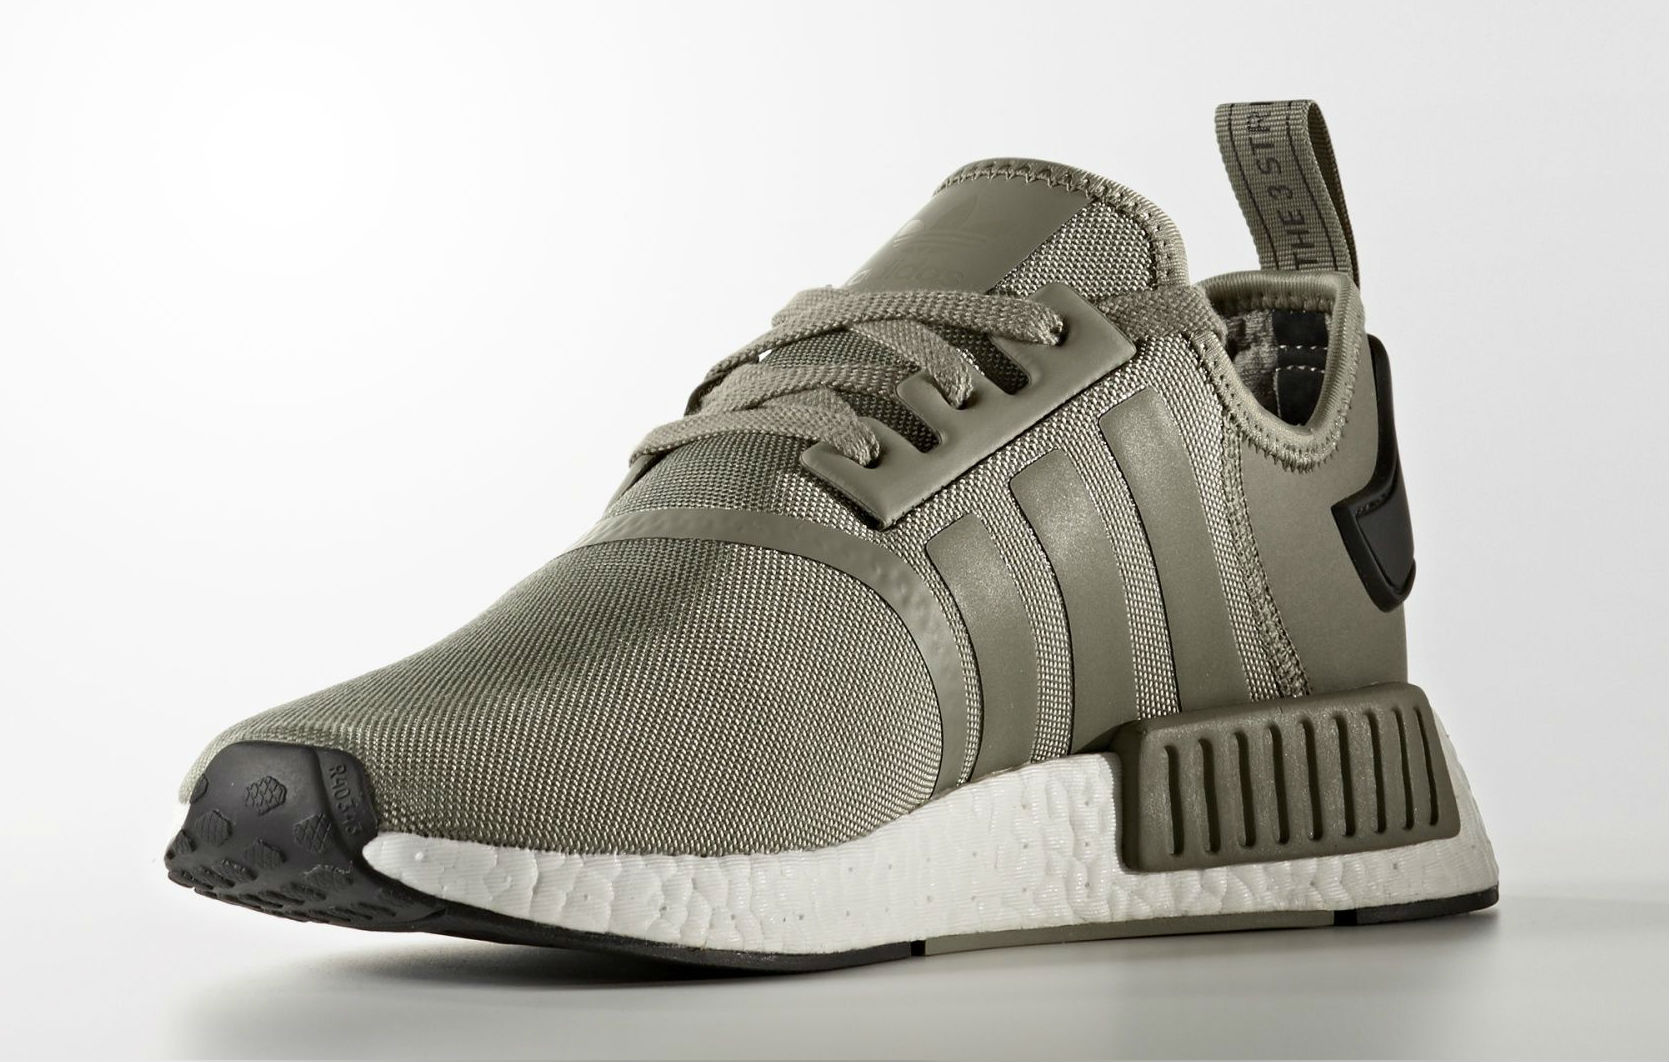 promo code 353ed 4bd8c adidas NMD Cargo Pack - Sneaker Bar Detroit